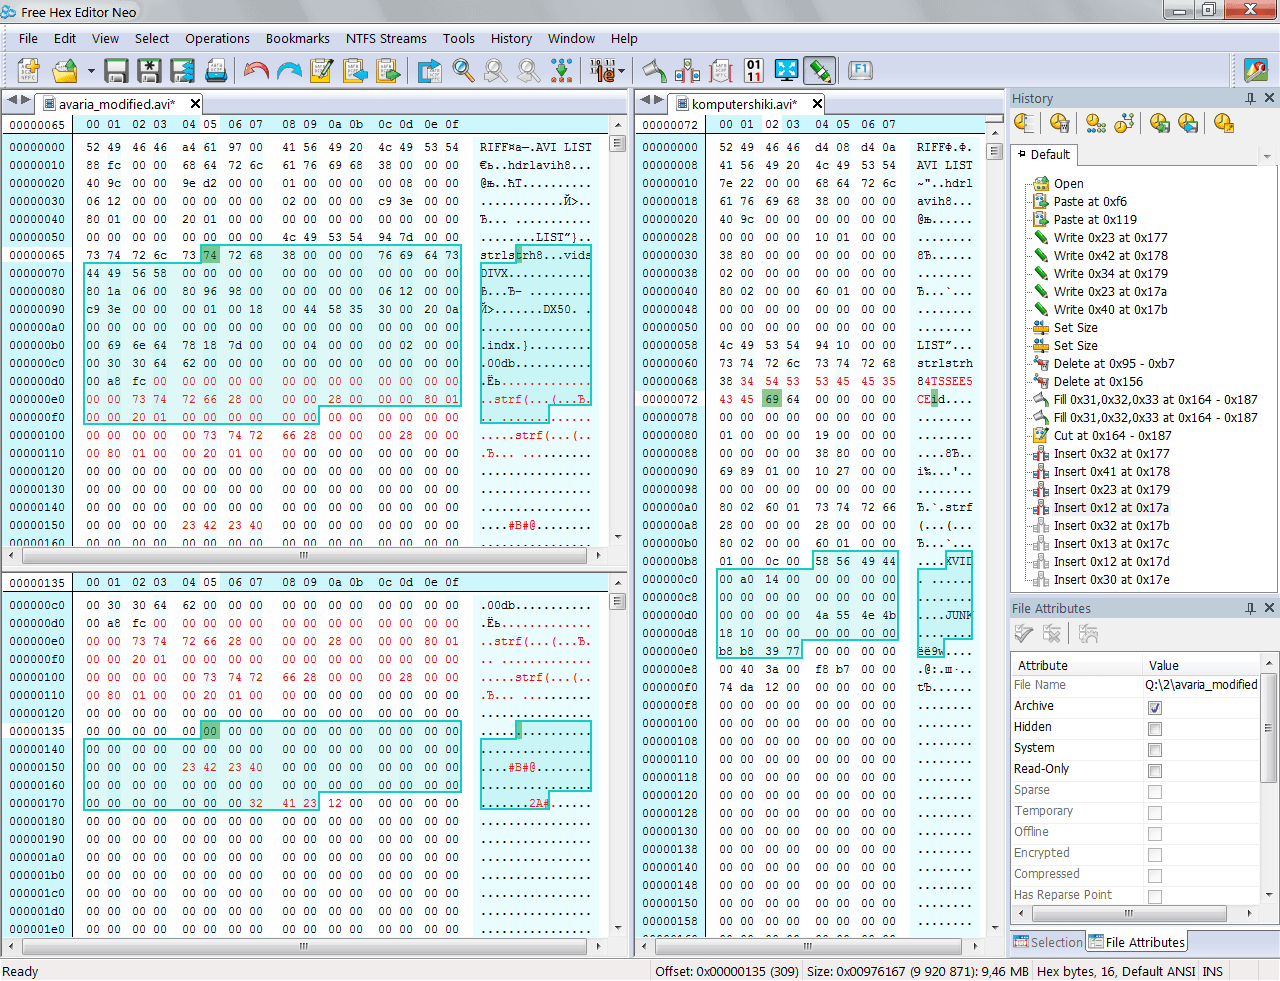 Free Hex Editor Neo picture or screenshot